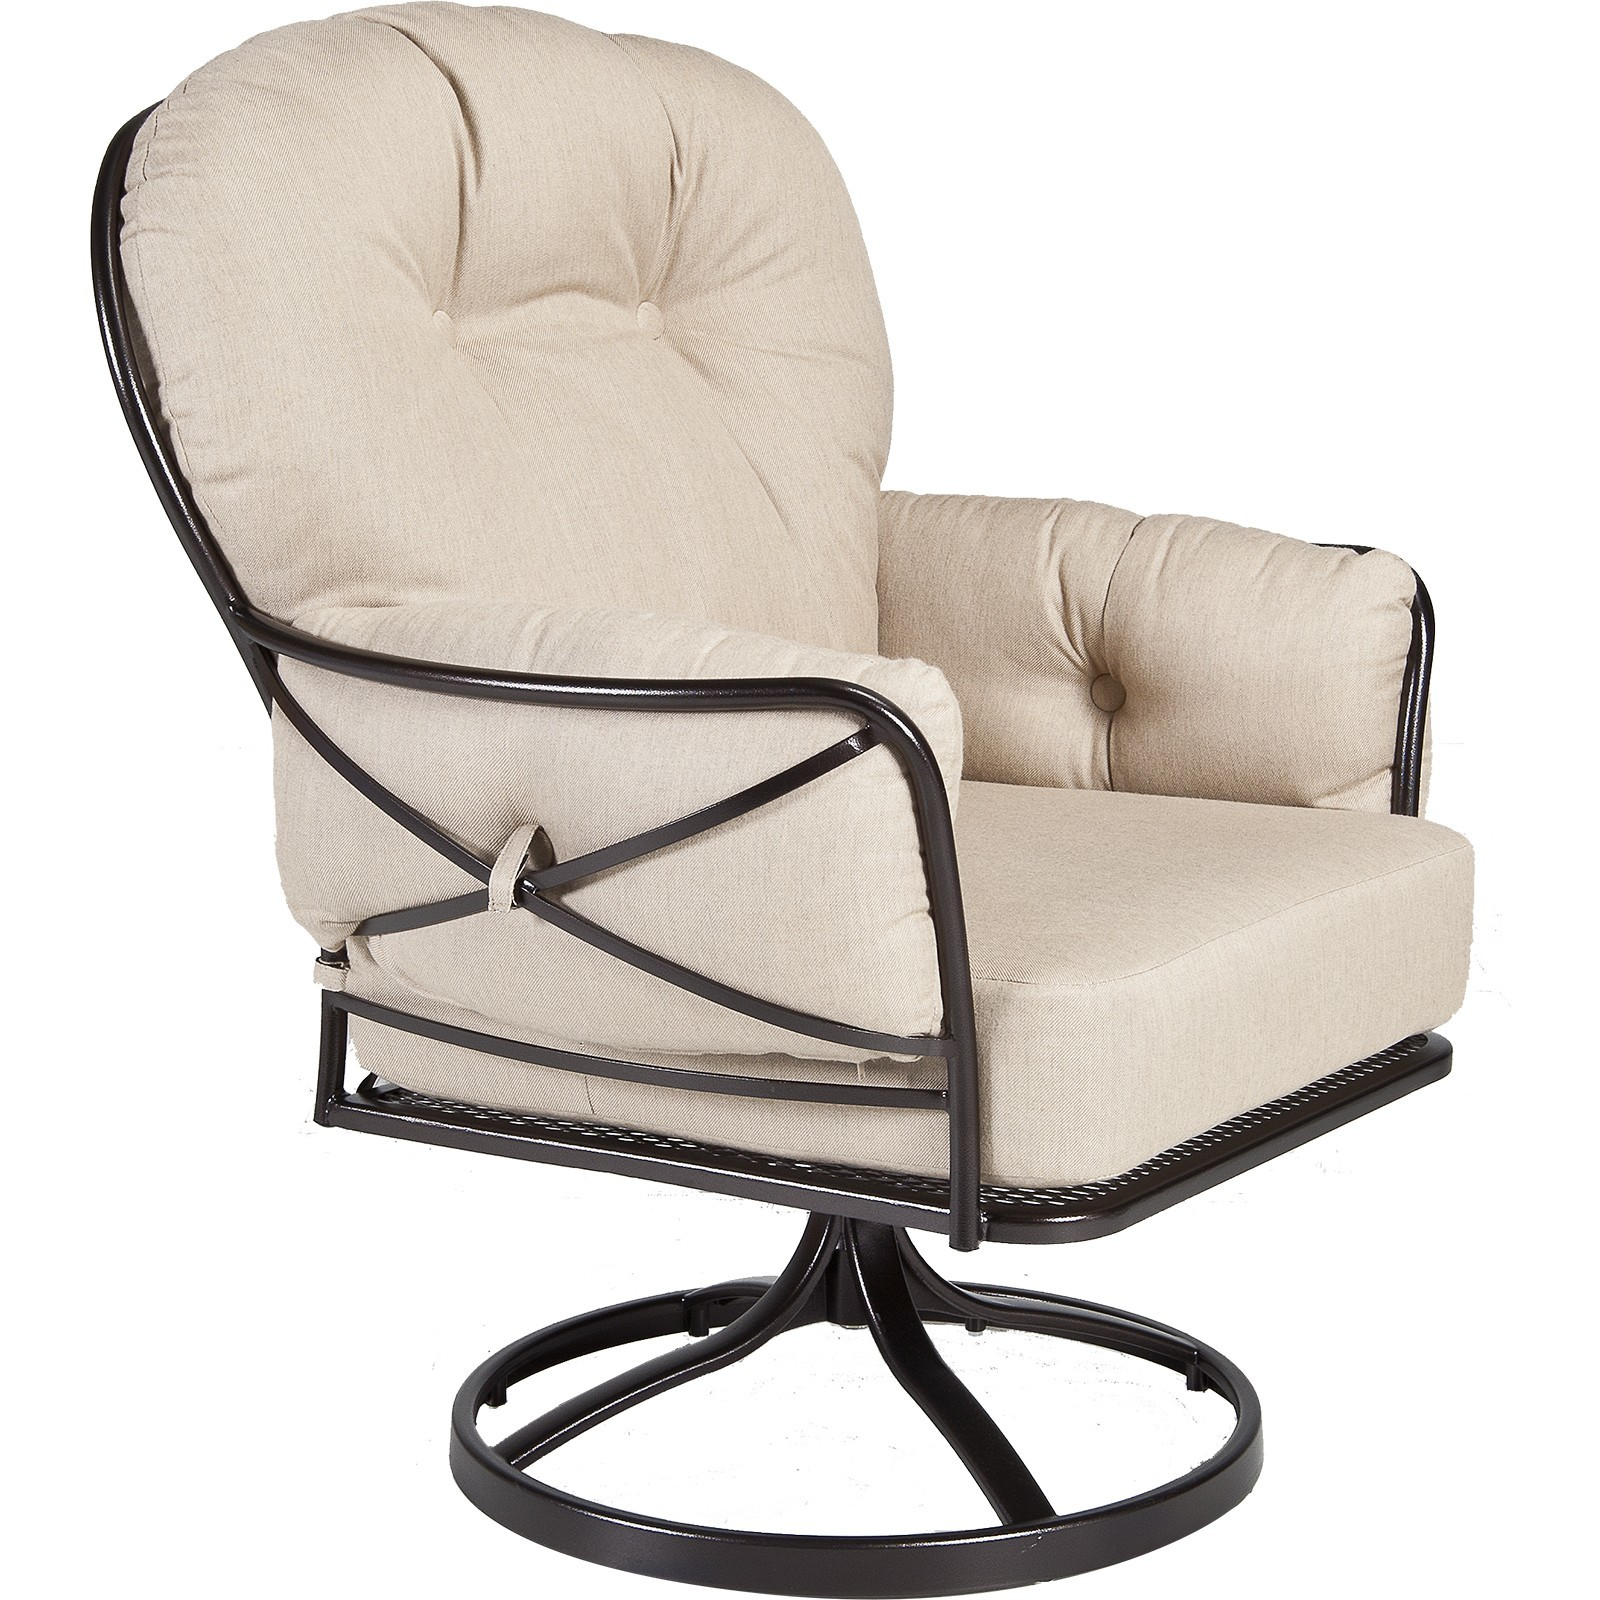 Cambria Swivel Rocker Lounge Chair